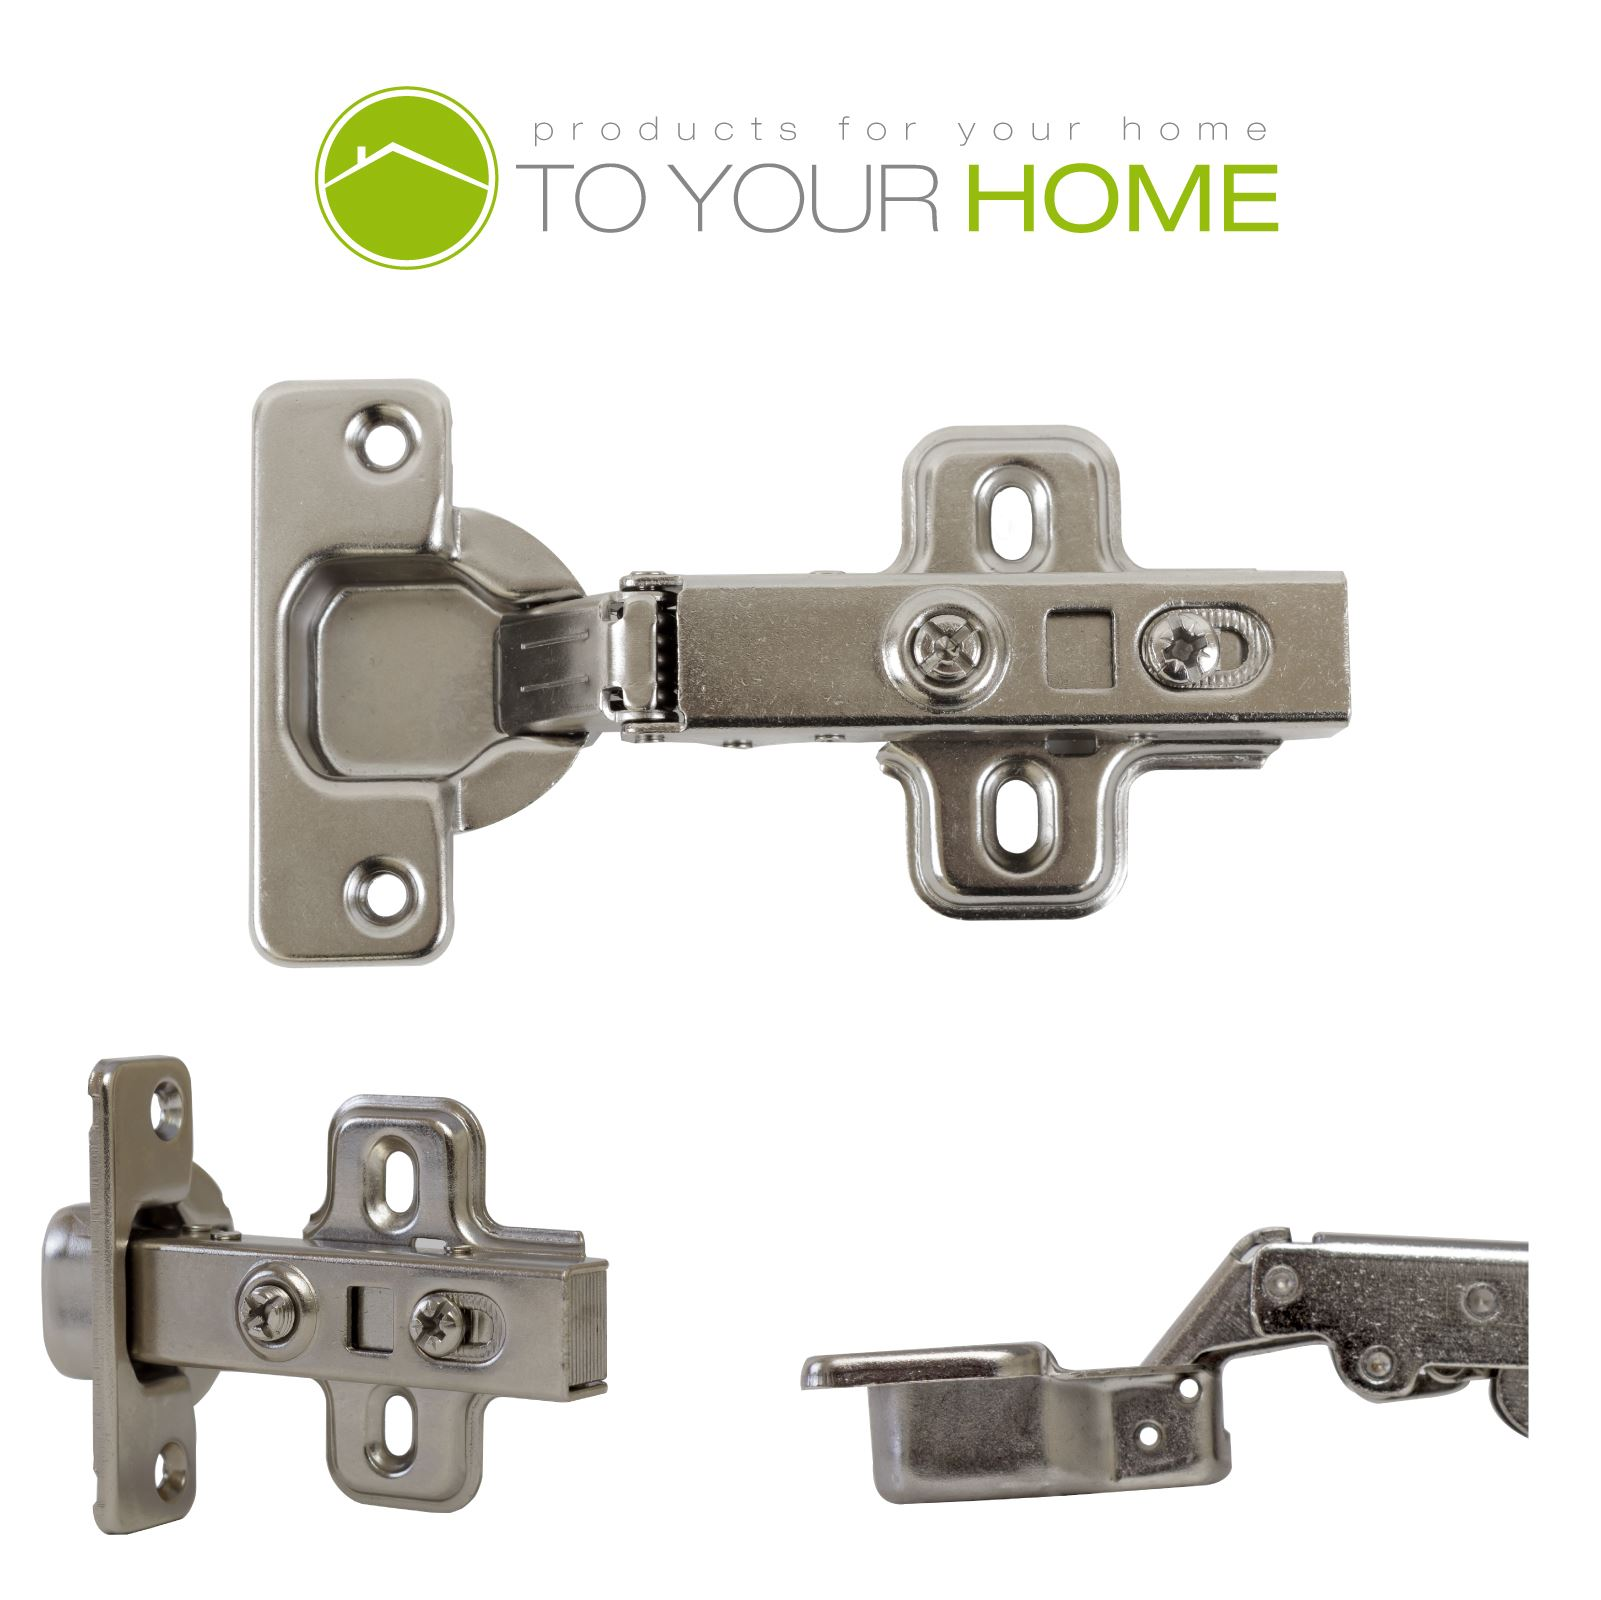 Kitchen Cabinet Hinges Soft Close: SOFT CLOSE KITCHEN CABINET CUPBOARD DOOR 35MM FULL OVERLAY